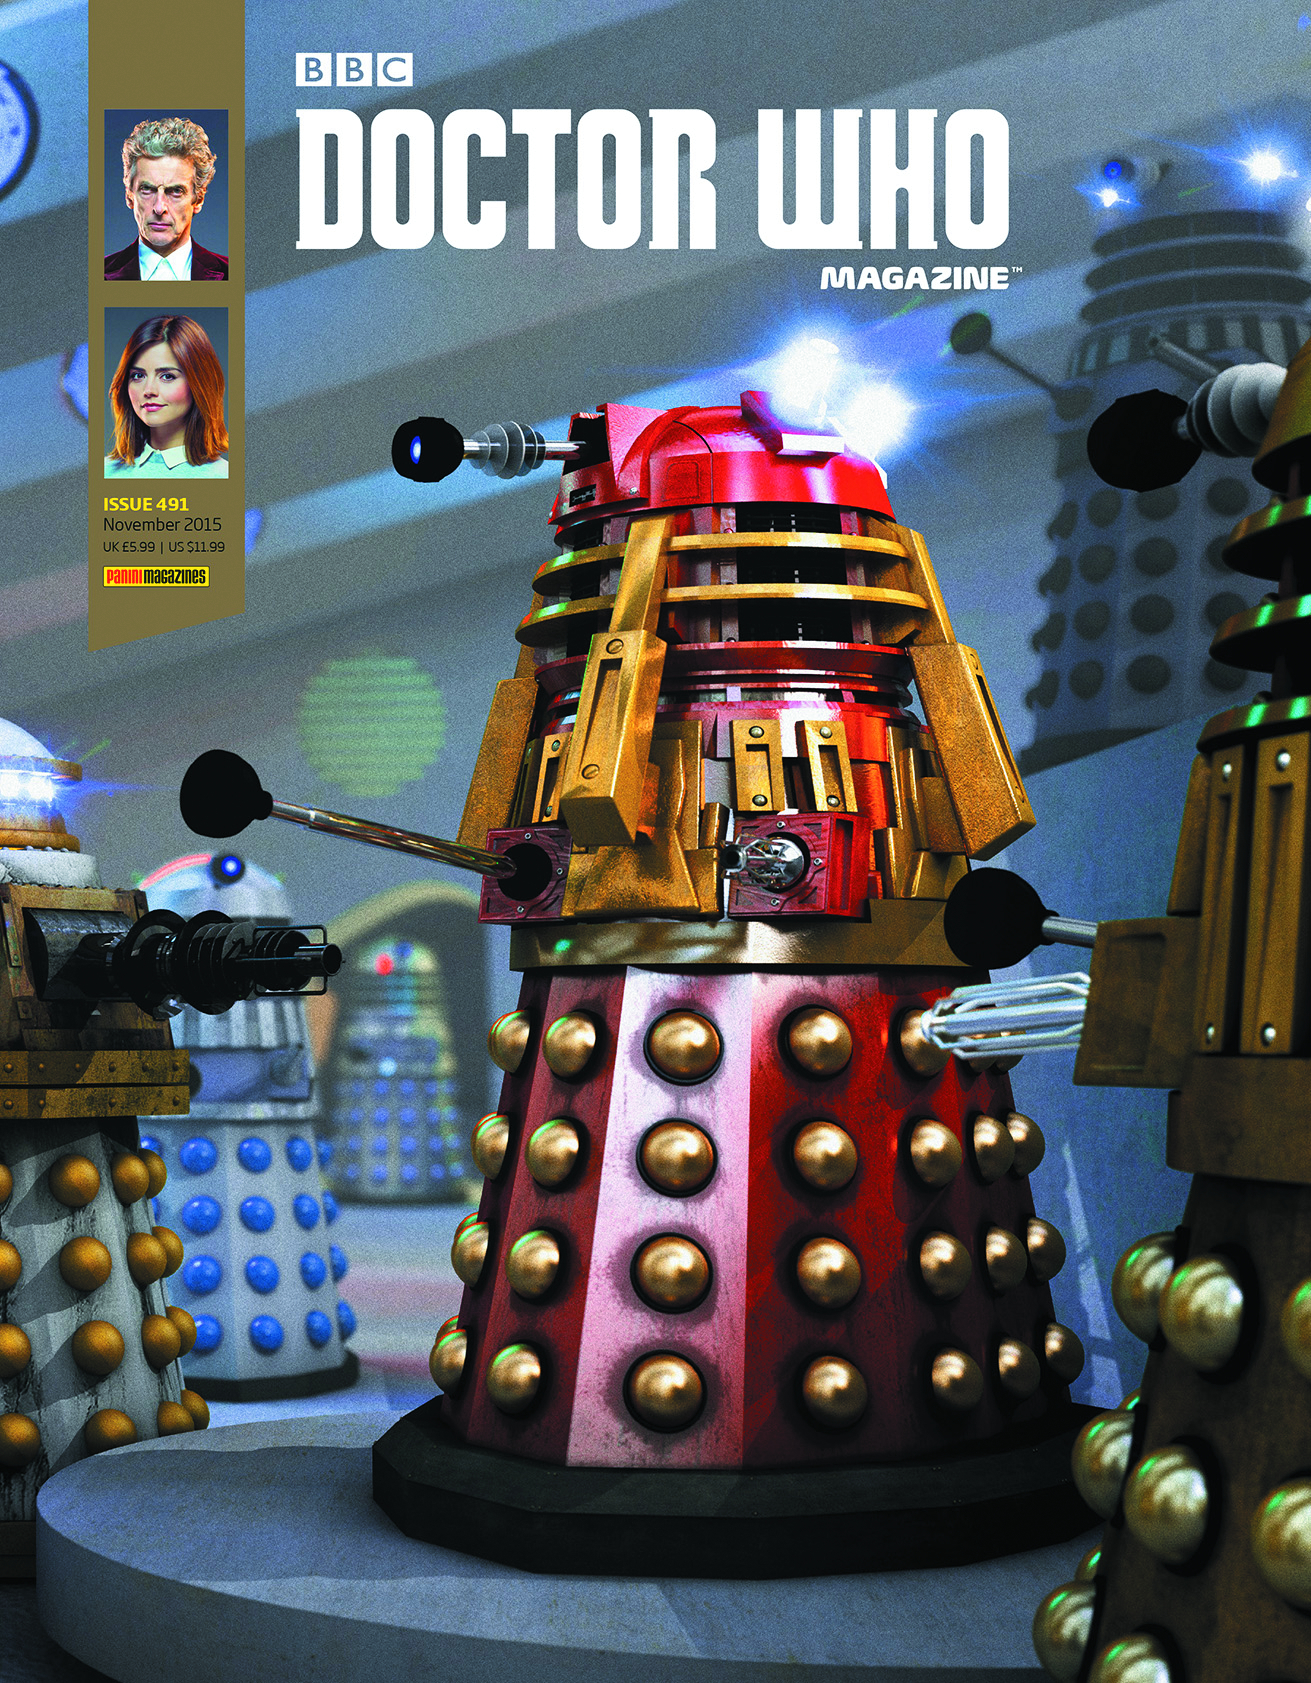 DOCTOR WHO MAGAZINE #495